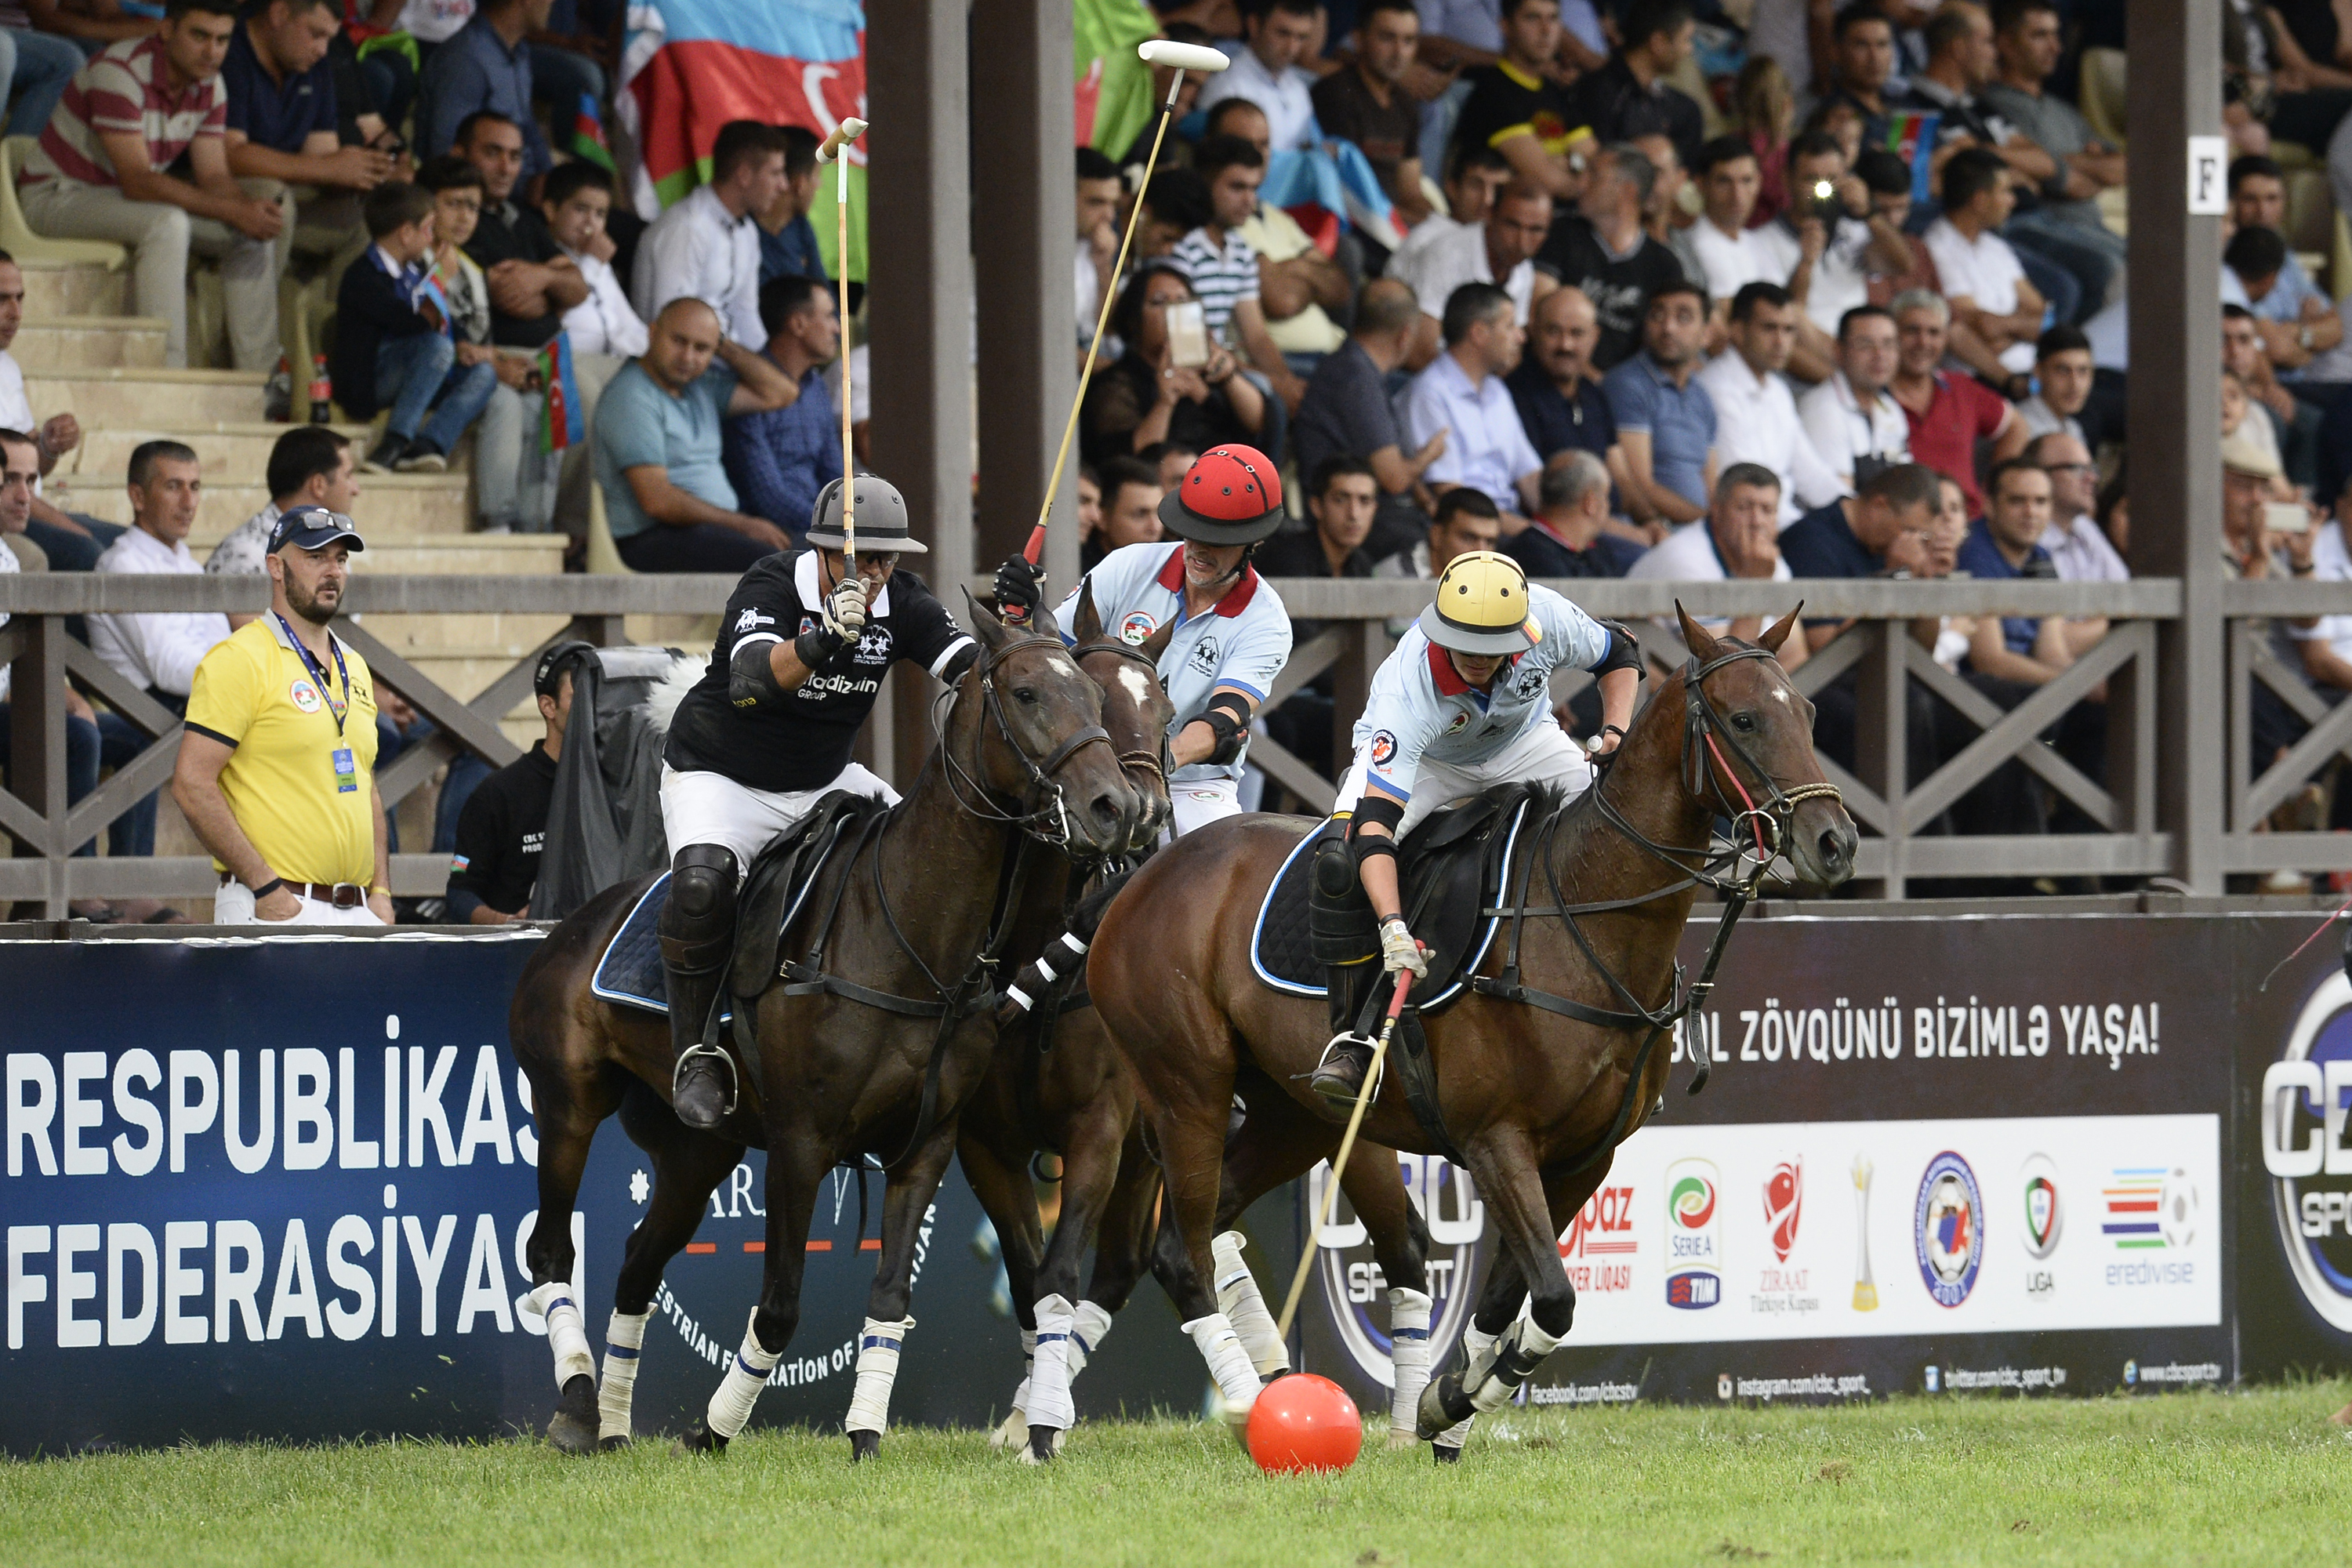 CBC Sport Arena Polo World Cup Azerbaijan 2017 from 8th - 10th September 2017